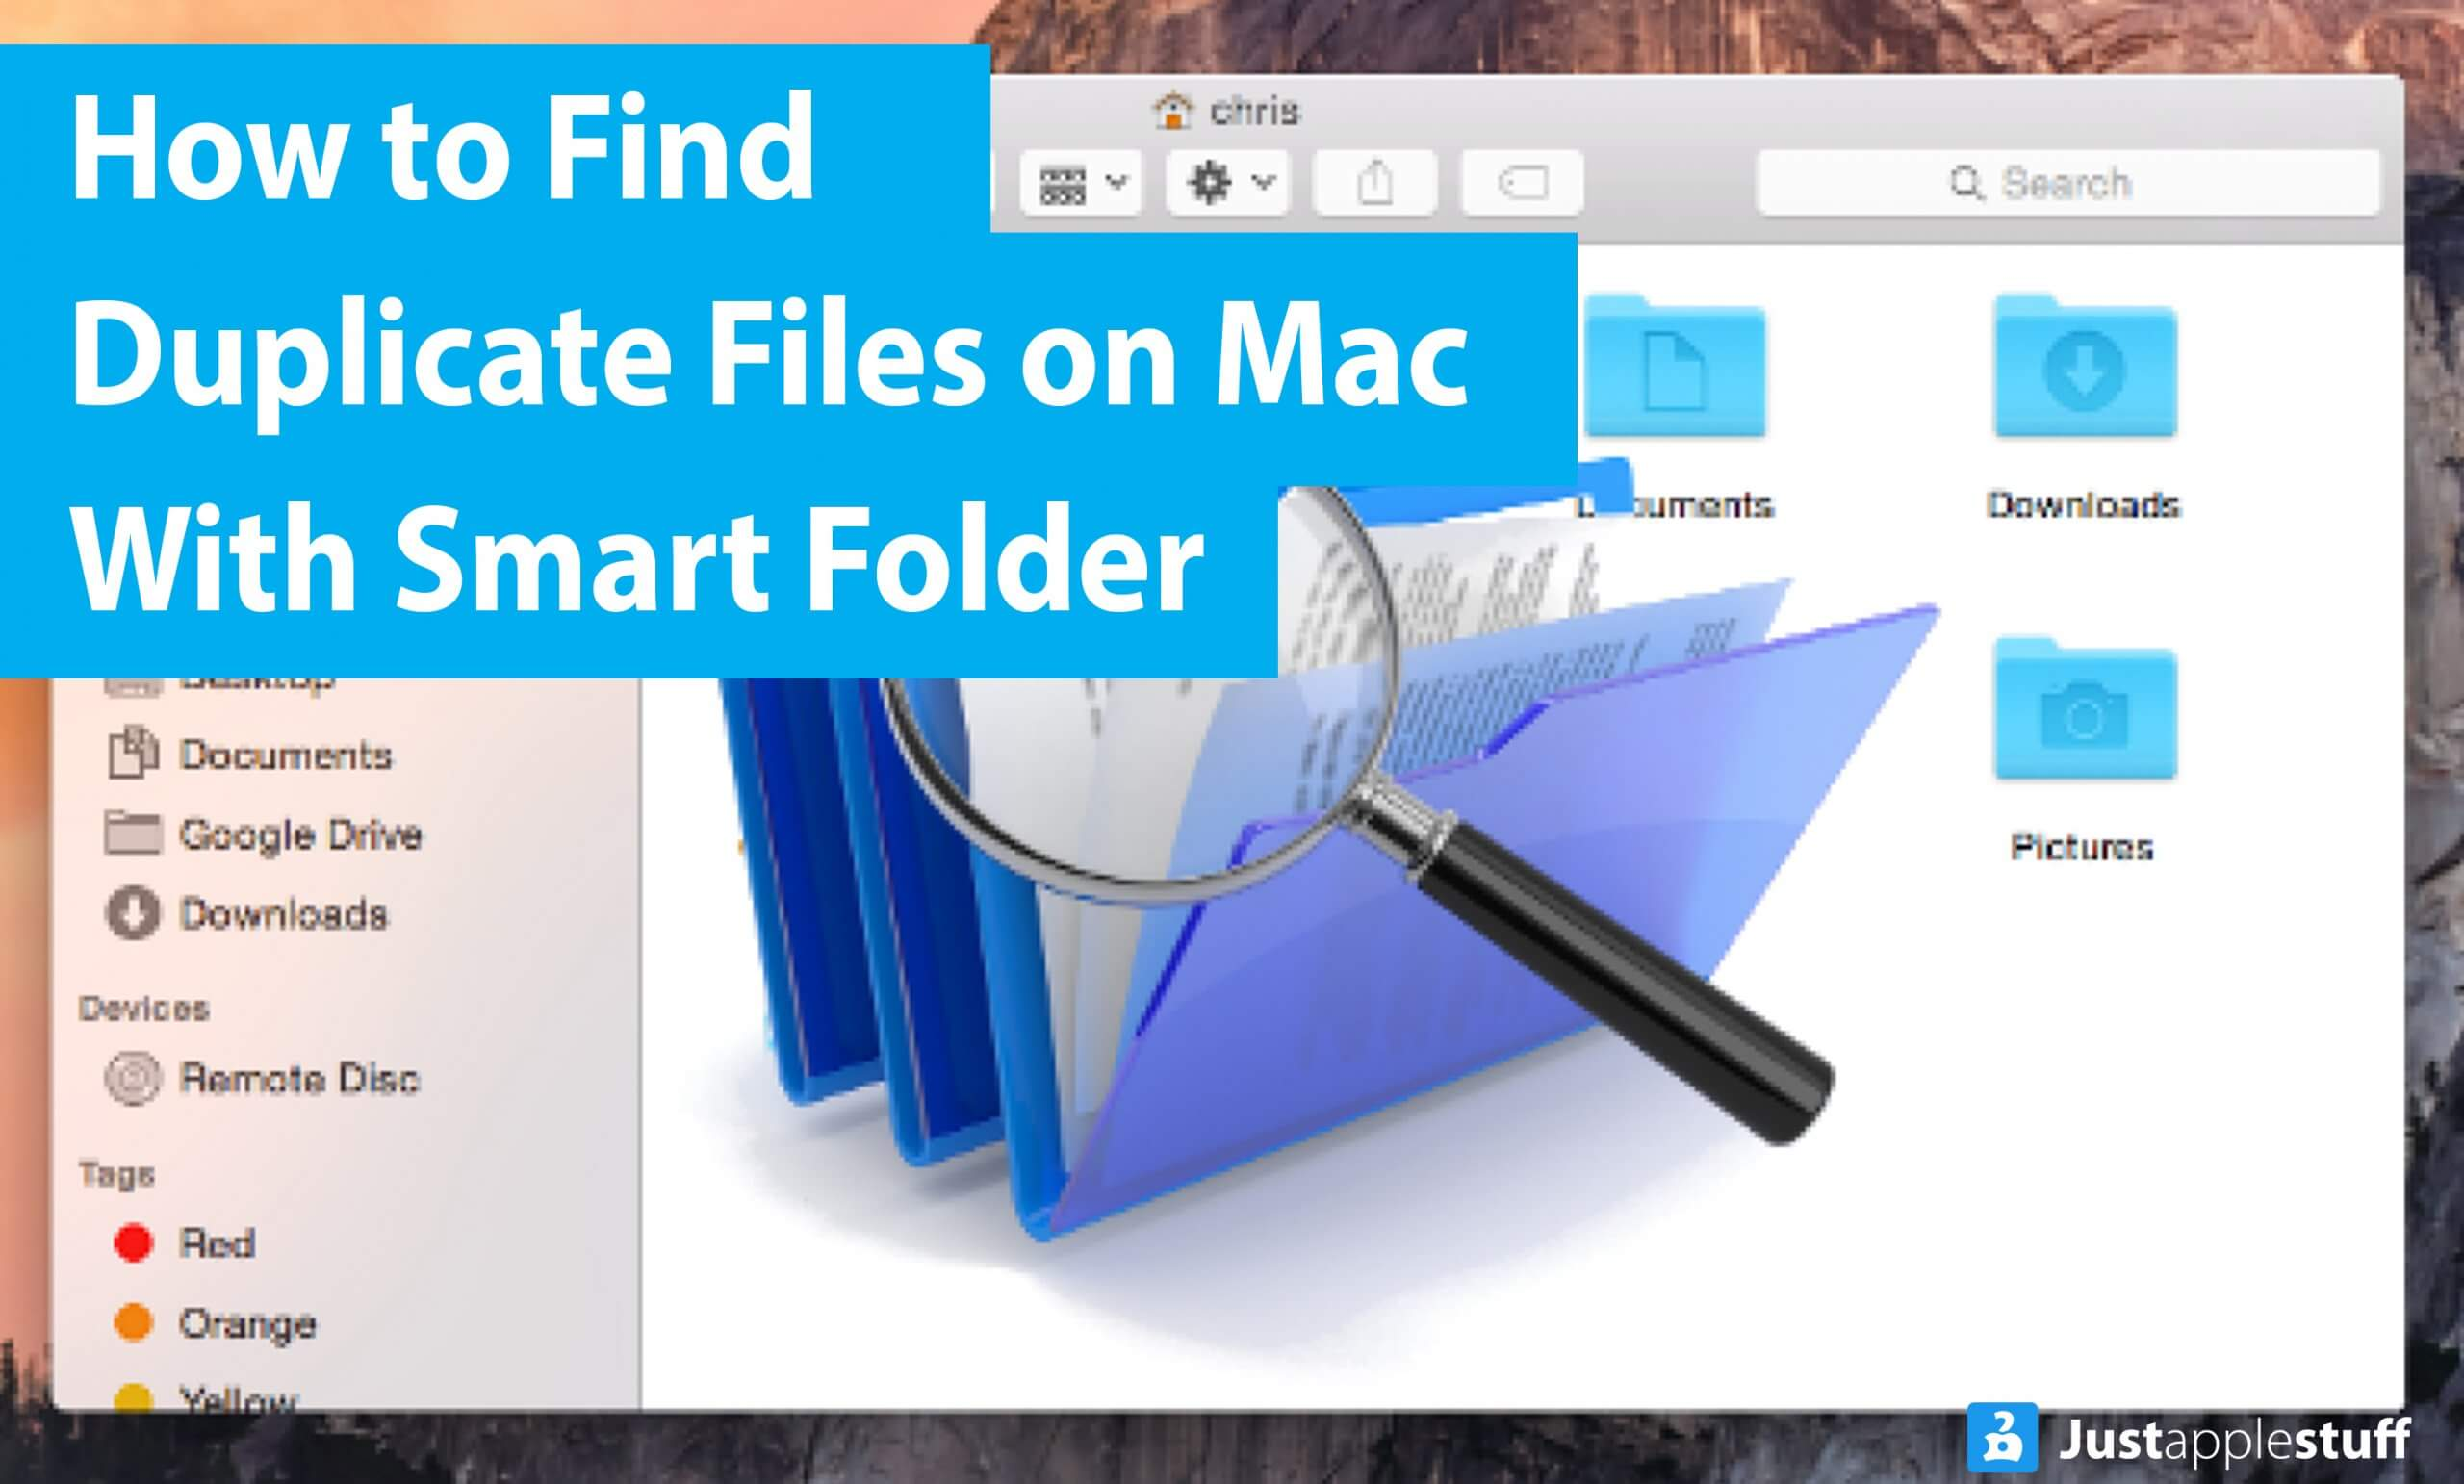 How to Find Duplicate Files on Mac With Smart Folder